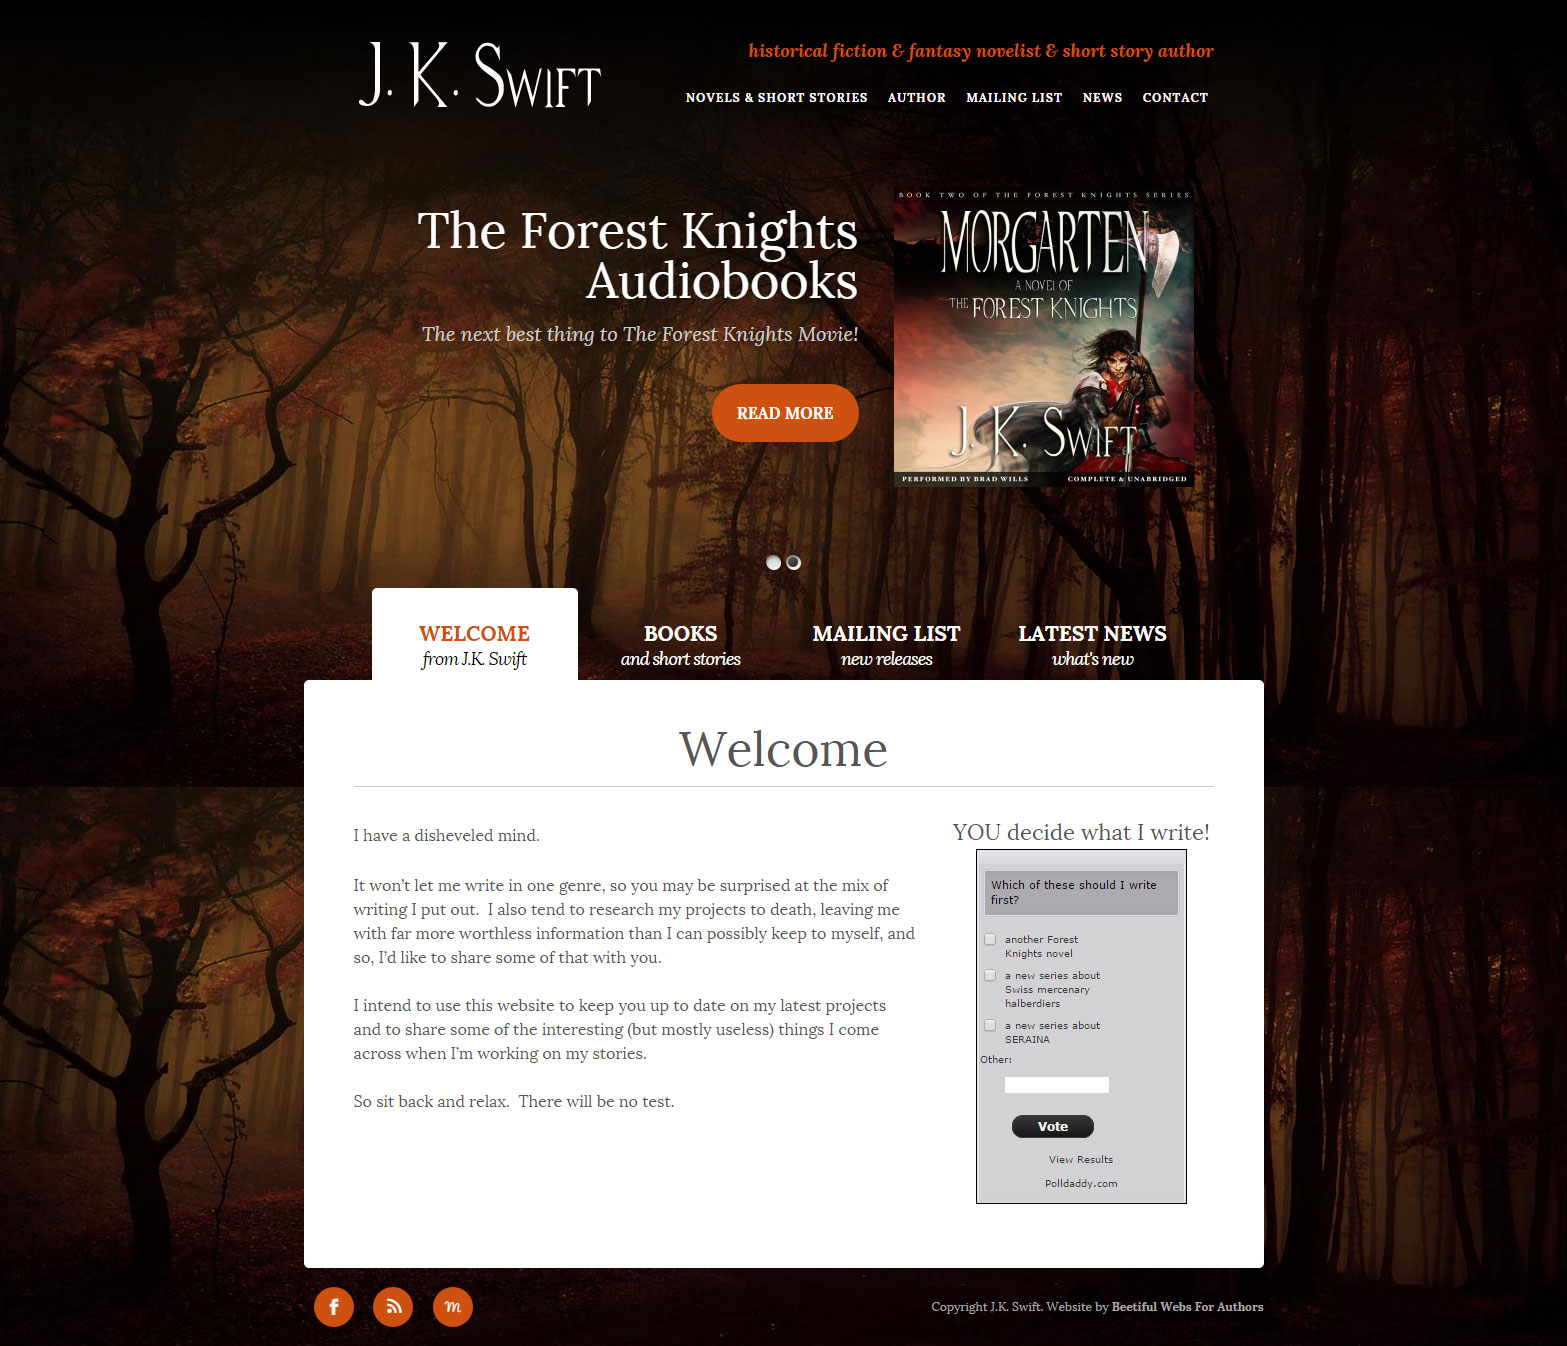 J.K. Swift website (jkswift.com)